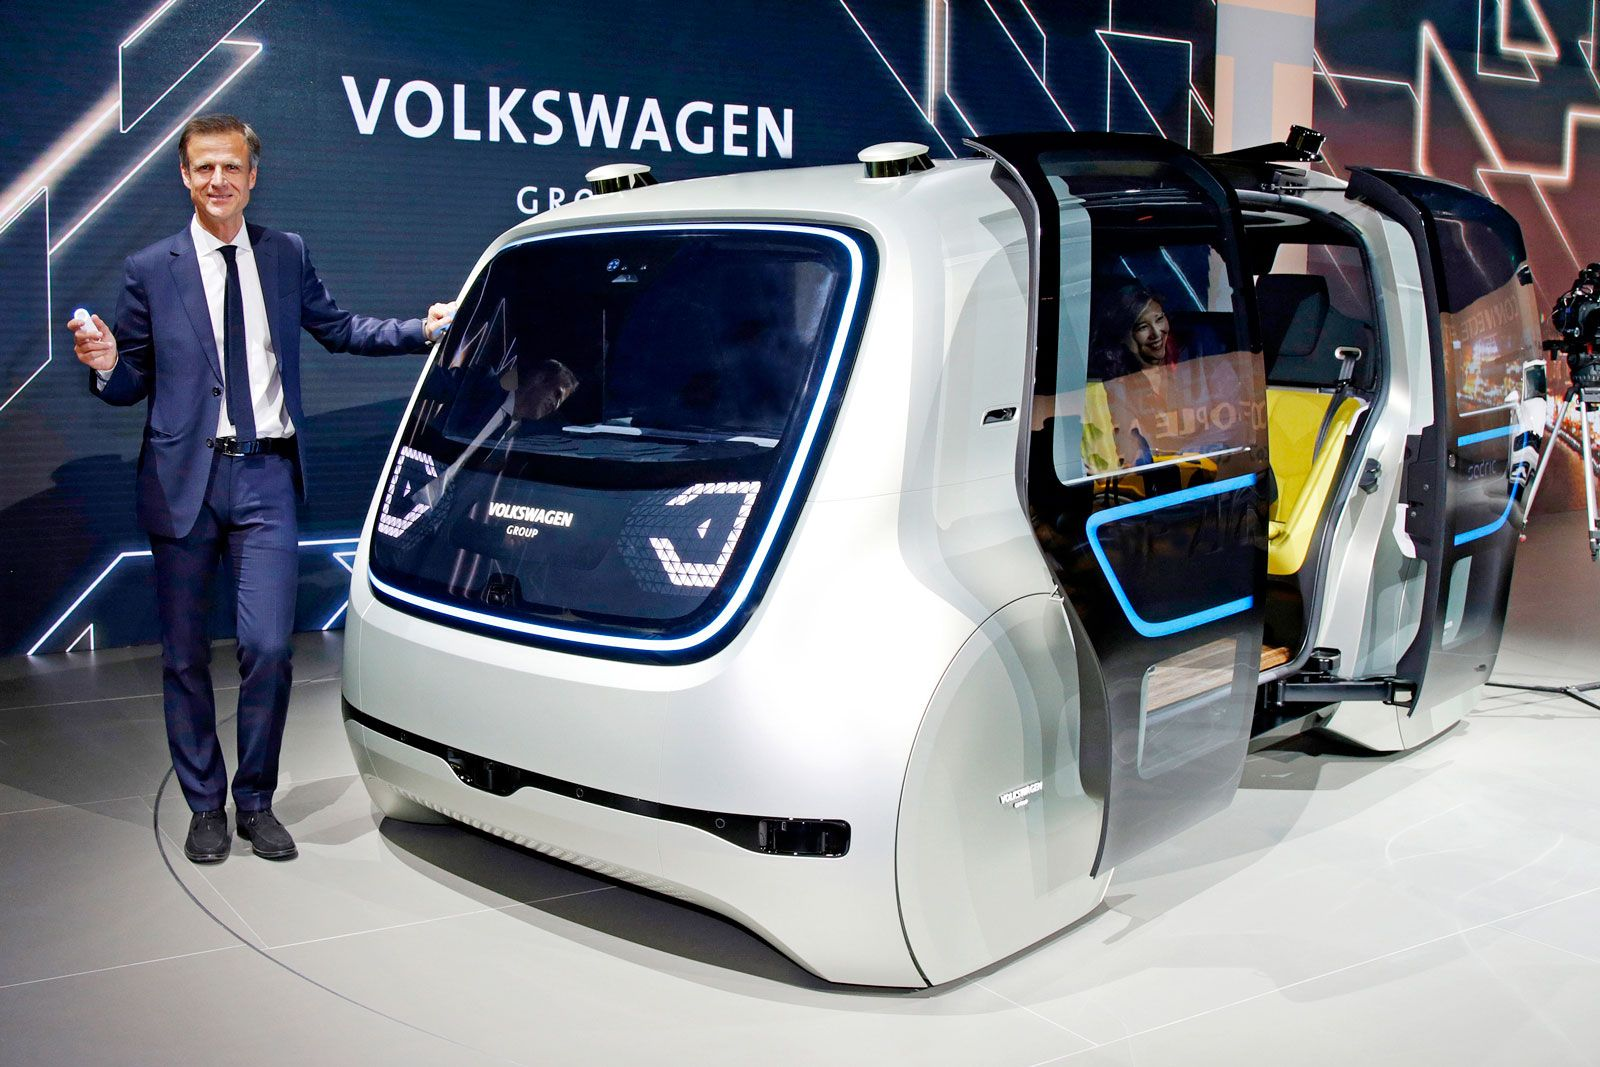 Volkswagen shows off its vision for a driverless future | Volkswagen